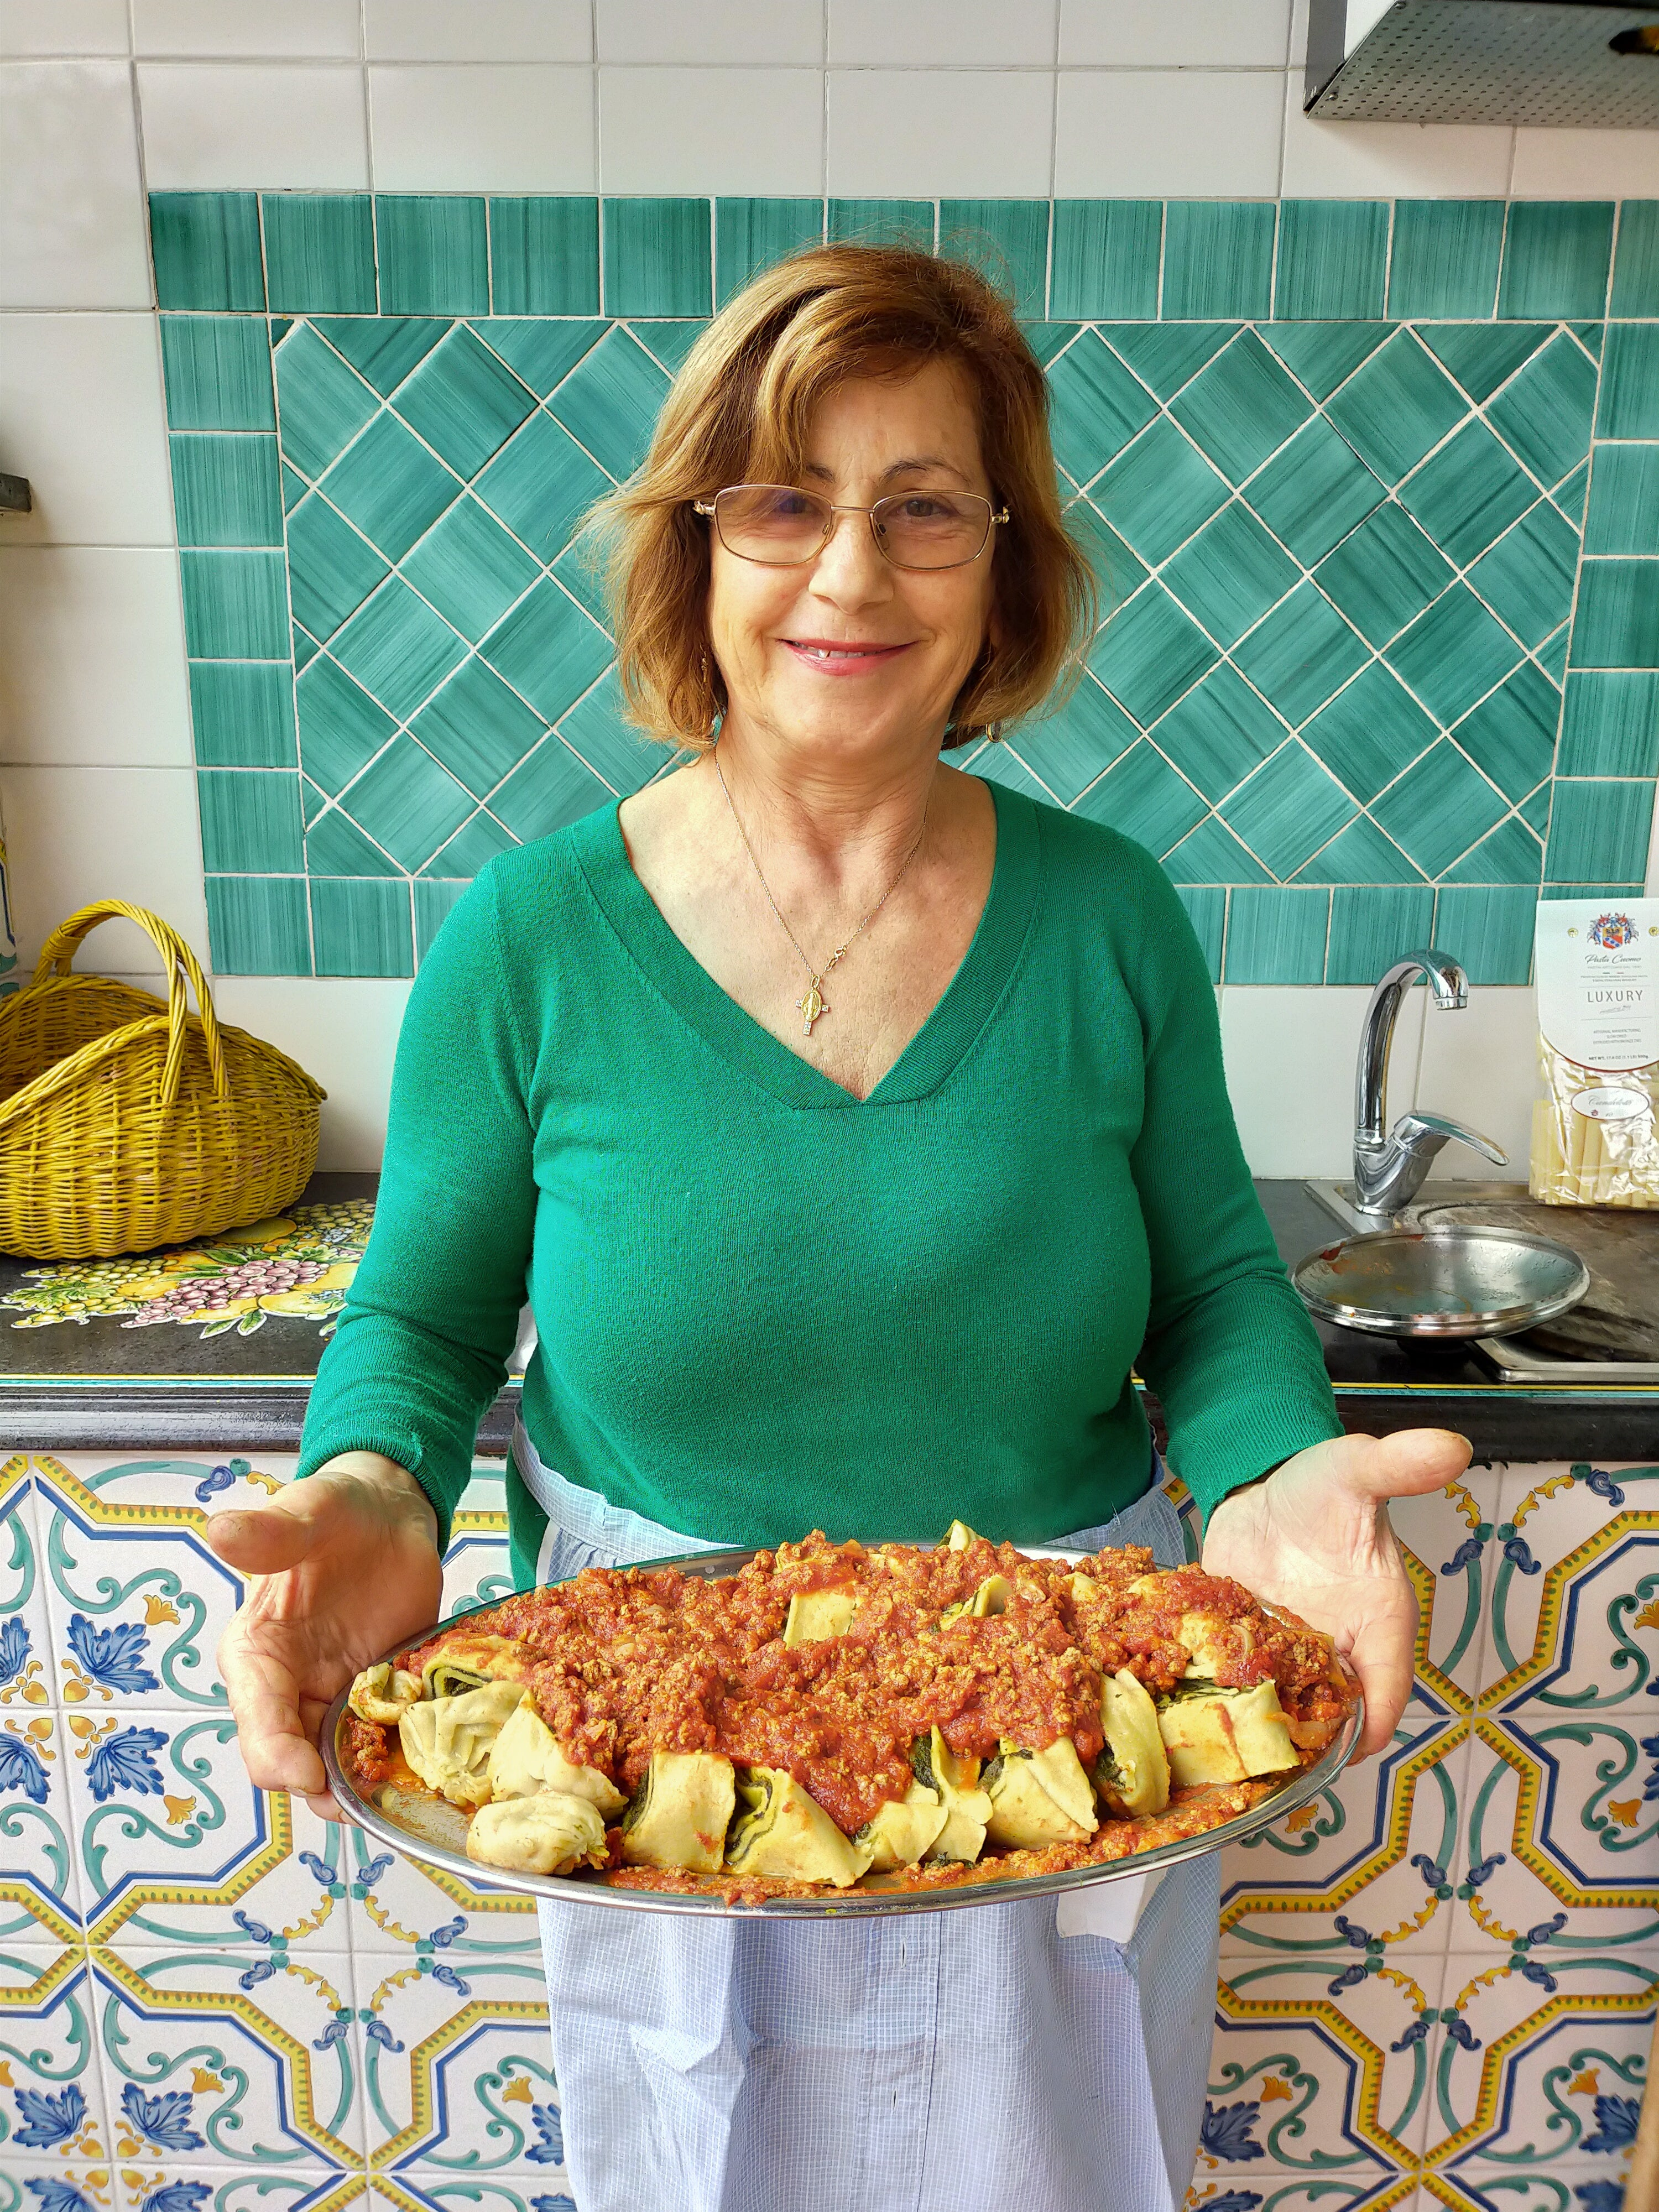 PRIVATE Virtual Cooking Experience with Nonna Giuseppina for AGEIST - MAY 10